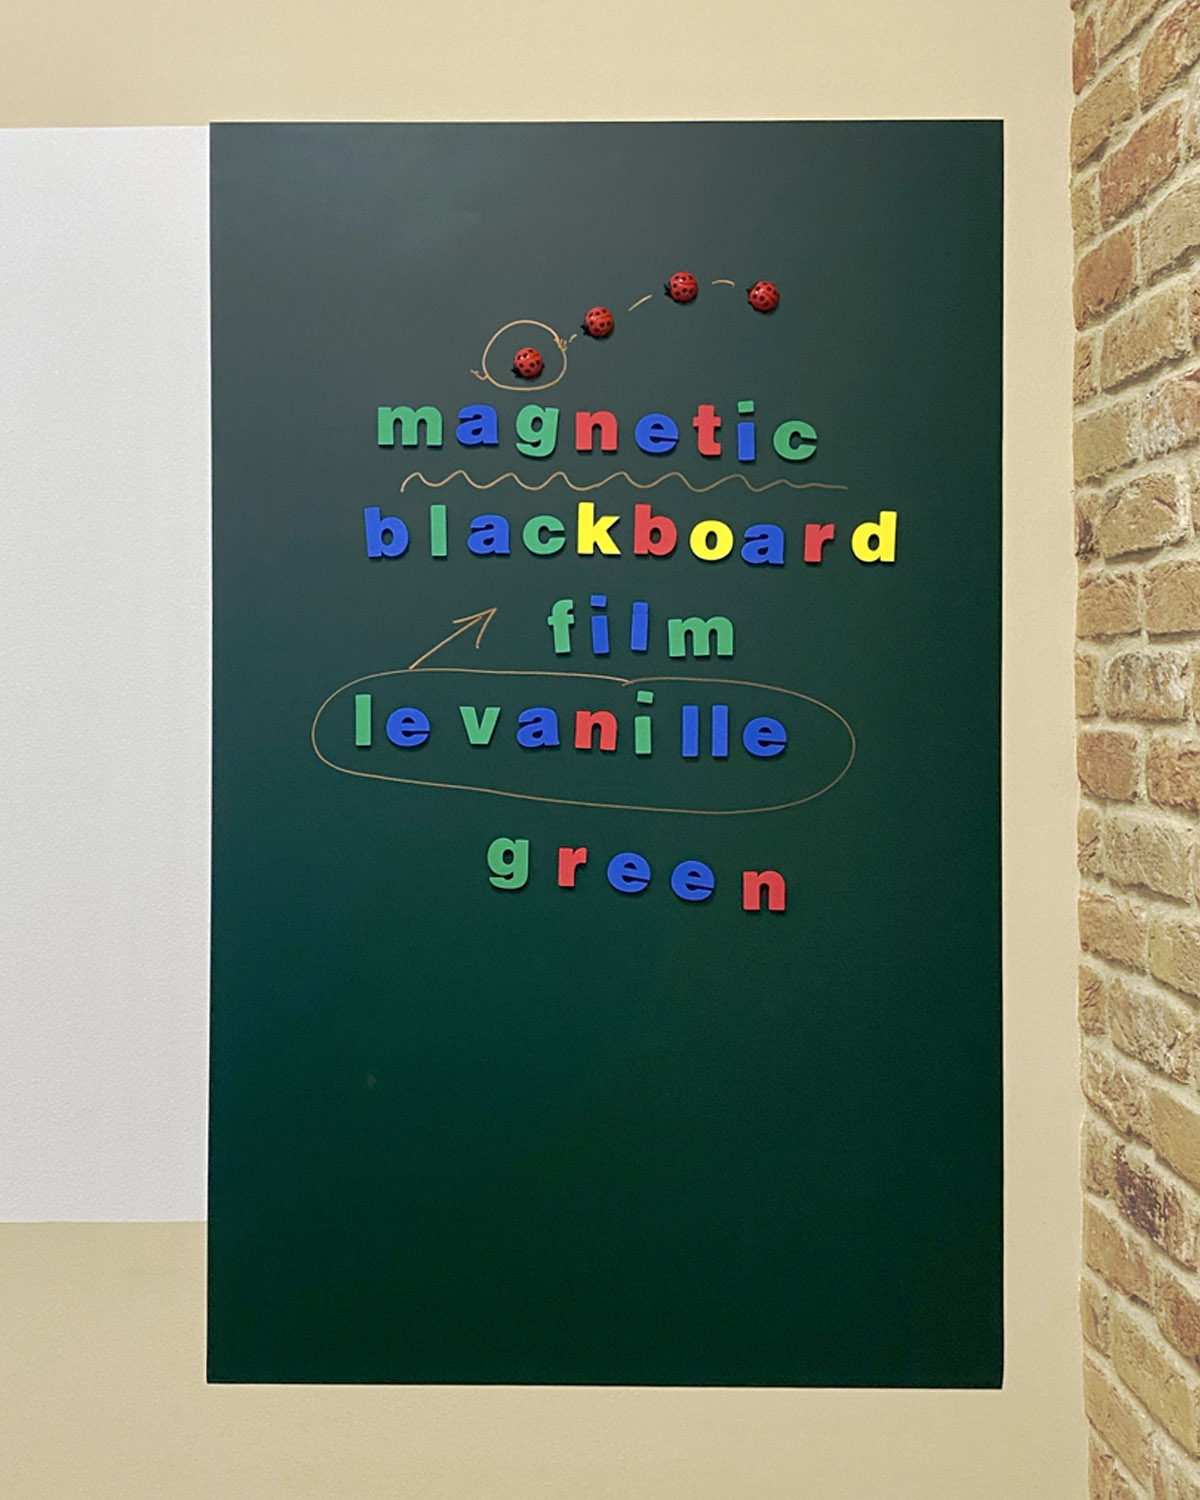 LeVanille-magnetic-blackboard-film-green-example-1200x1500.jpg